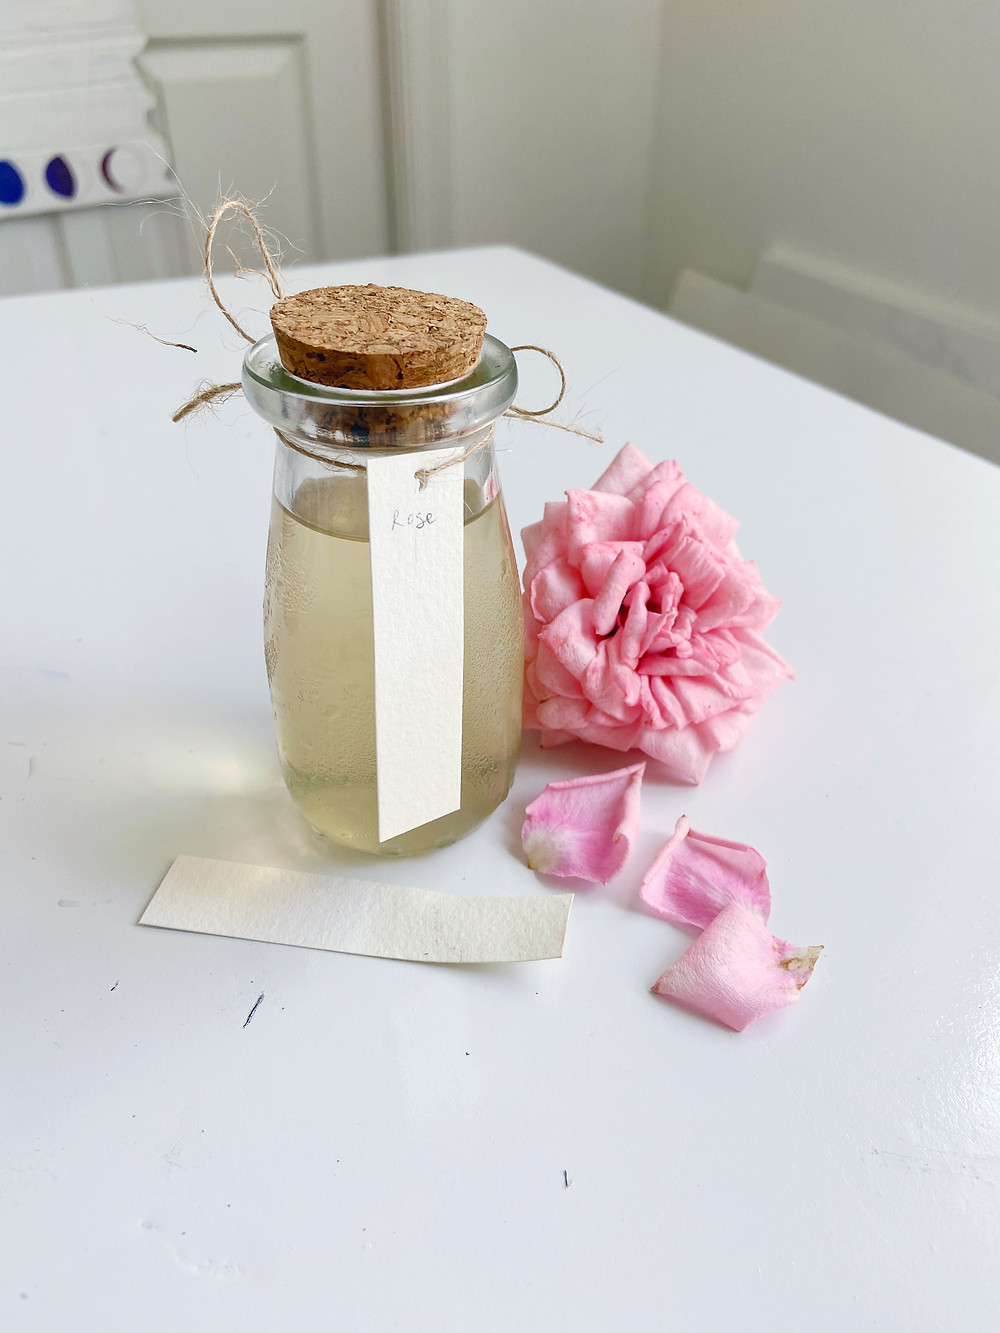 a bottle of light yellow ink with swatches and a pink rose